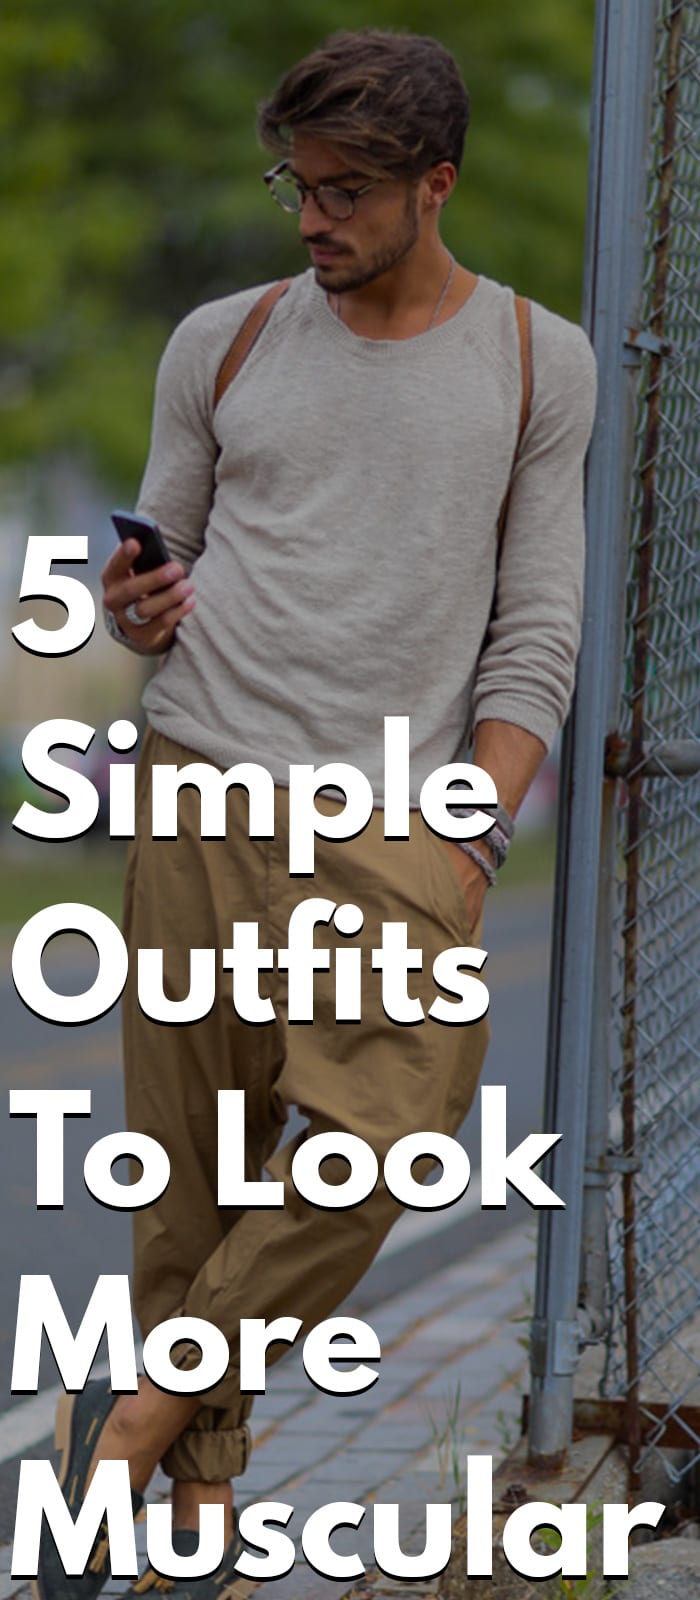 5 Simple Outfits To Look More Muscular